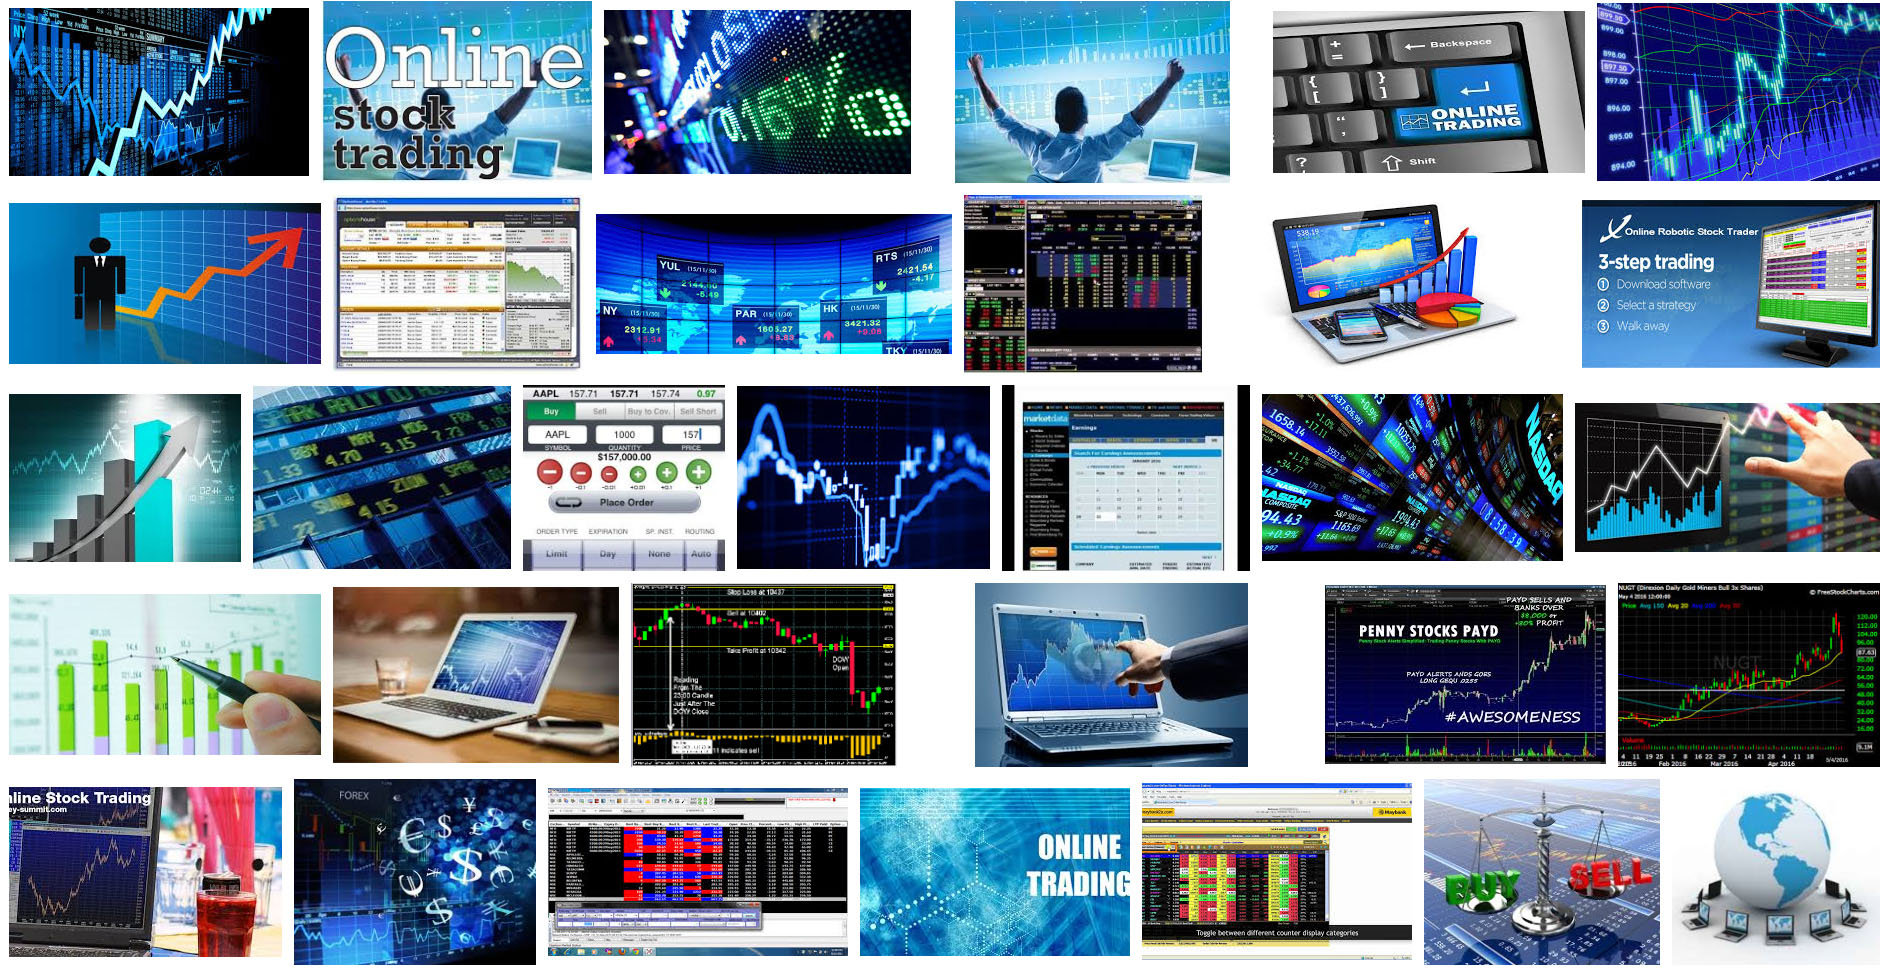 Online Stock Trading Websites